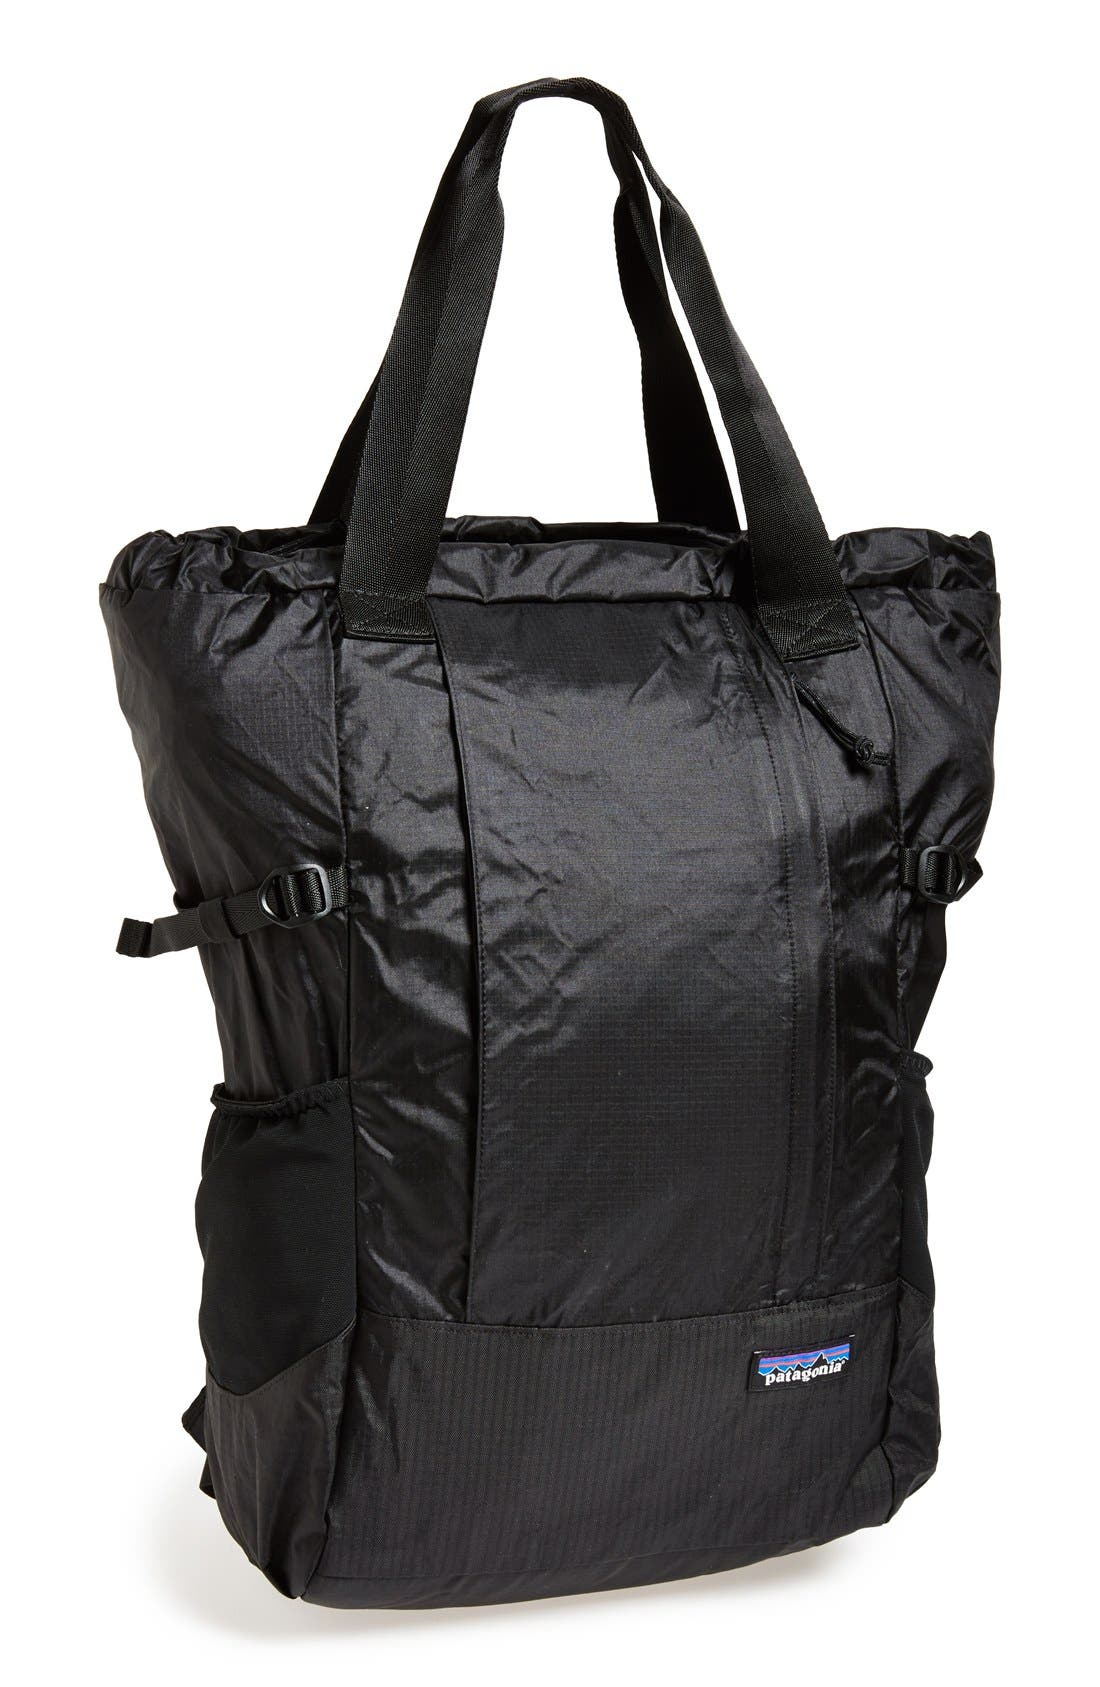 Main Image - Patagonia Lightweight Travel Tote Pack